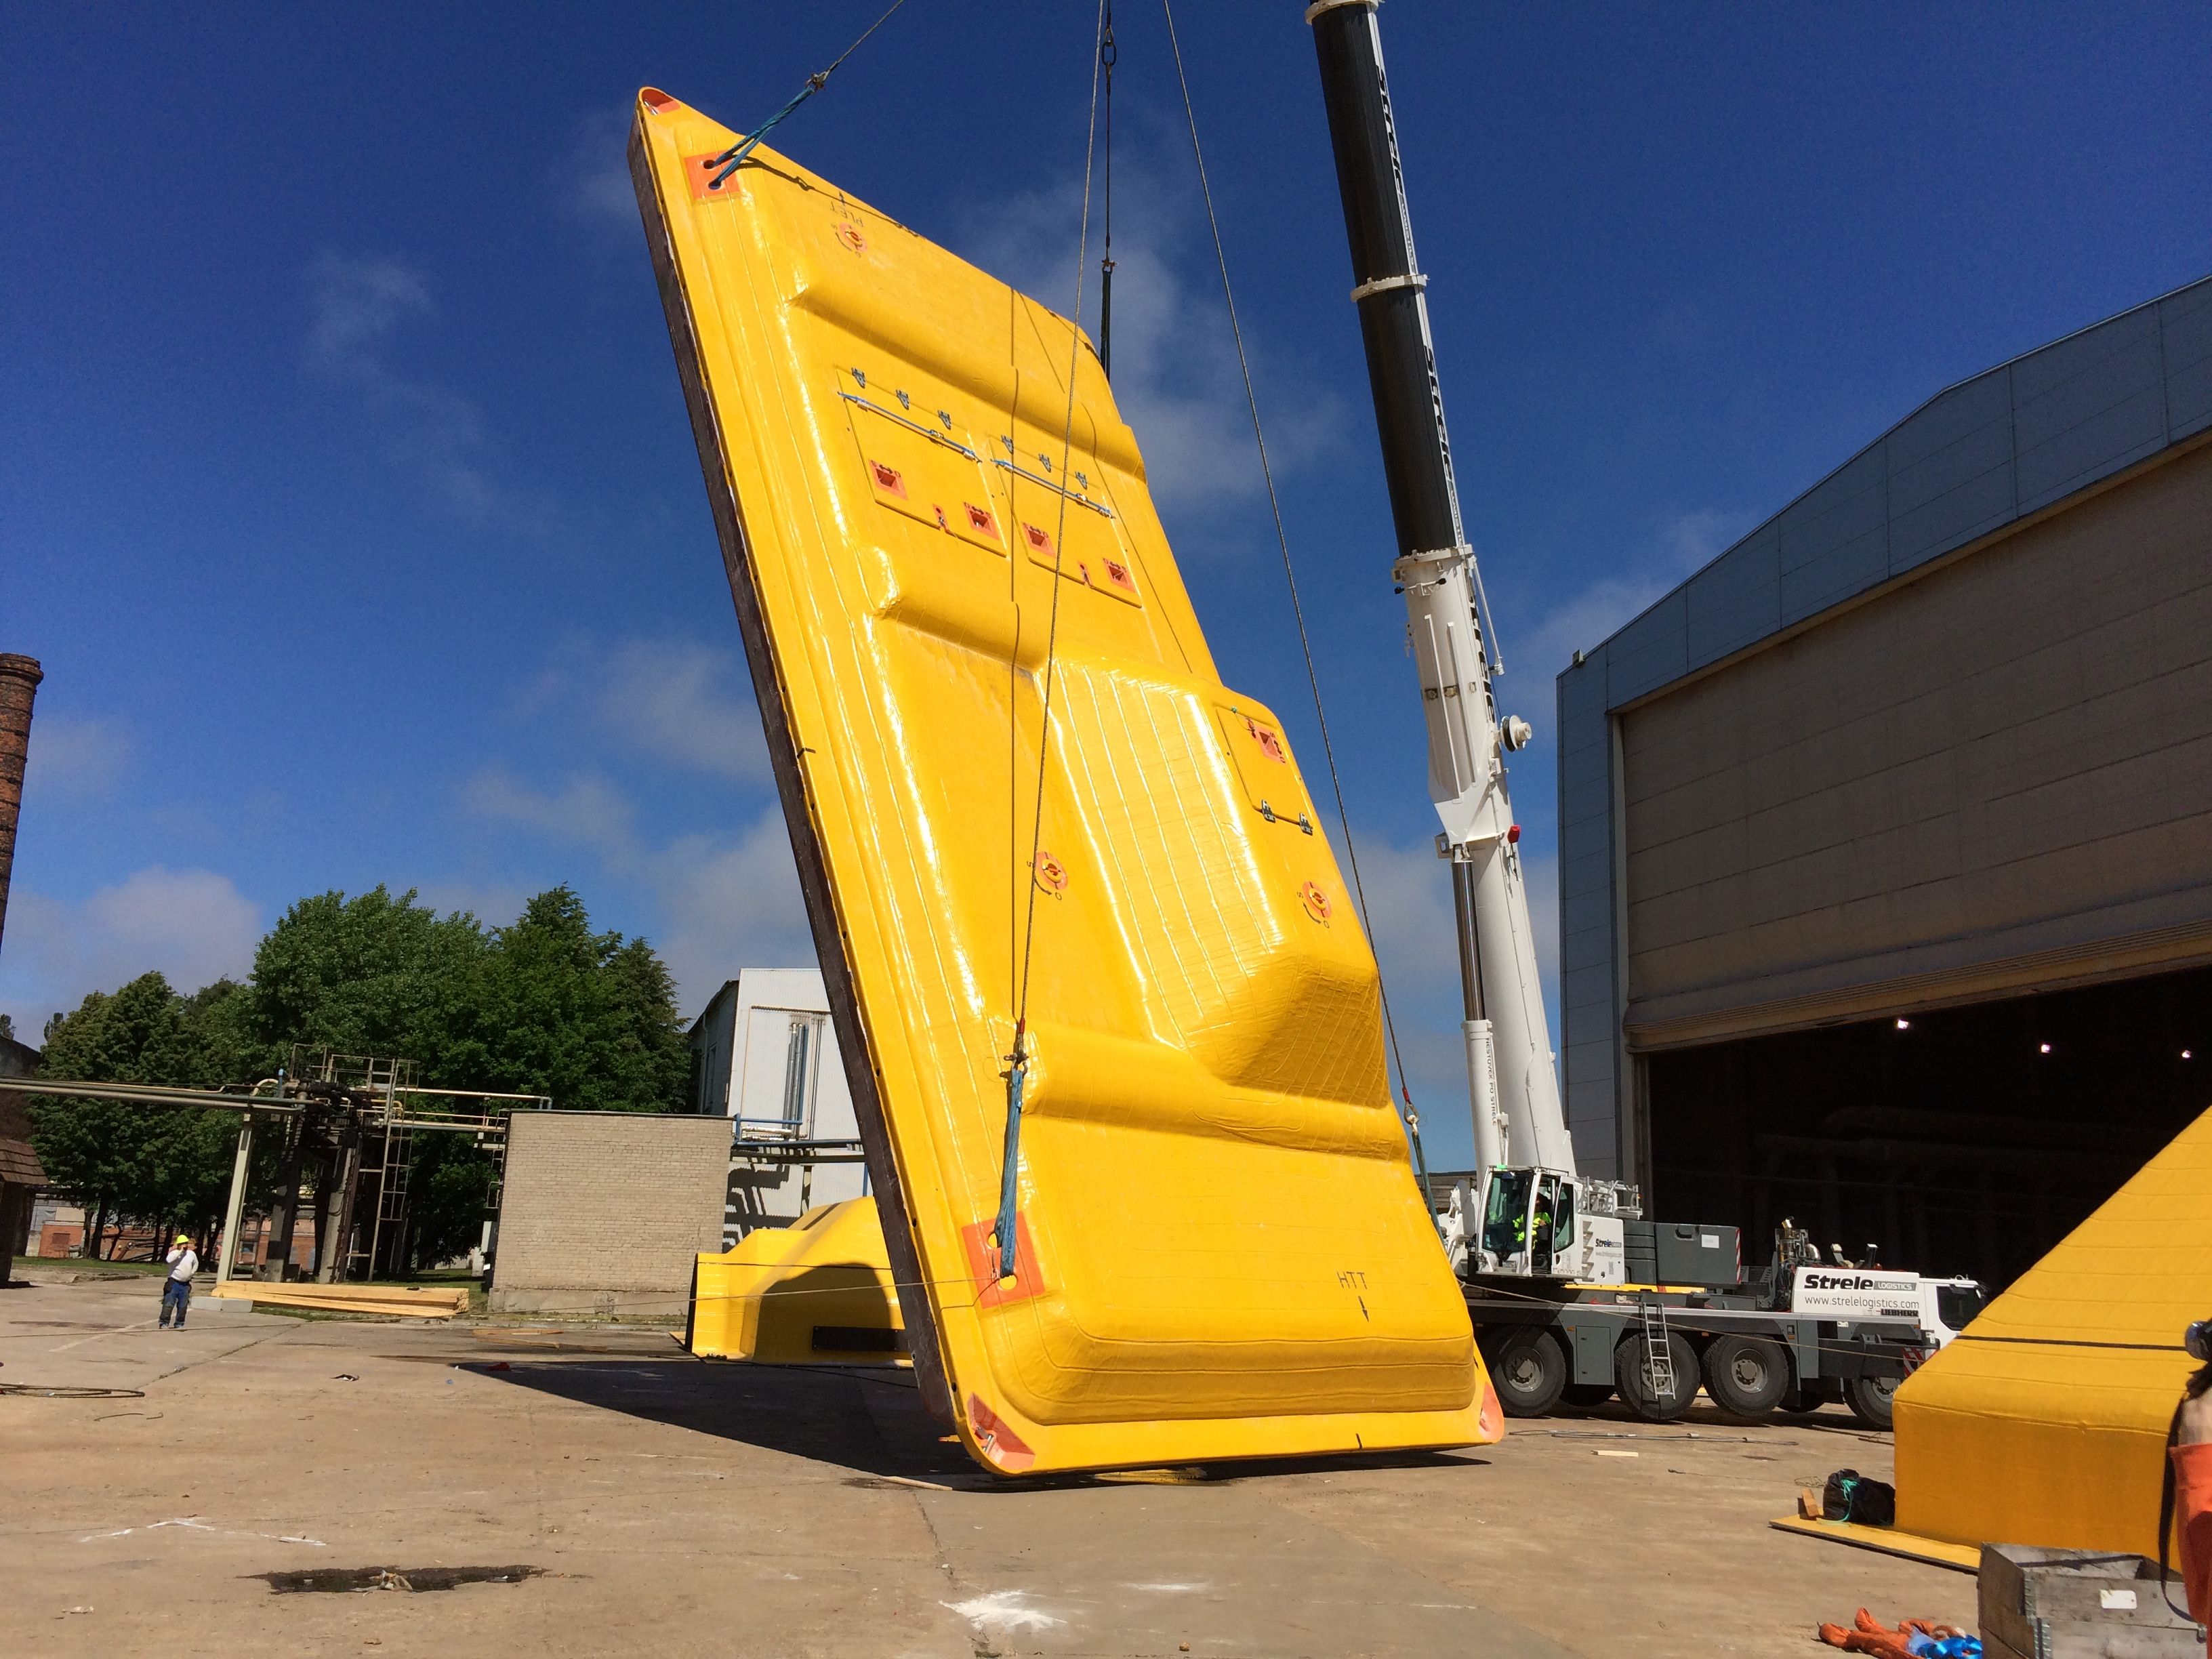 CSUB GRP Composite Subsea Offshore Hatches